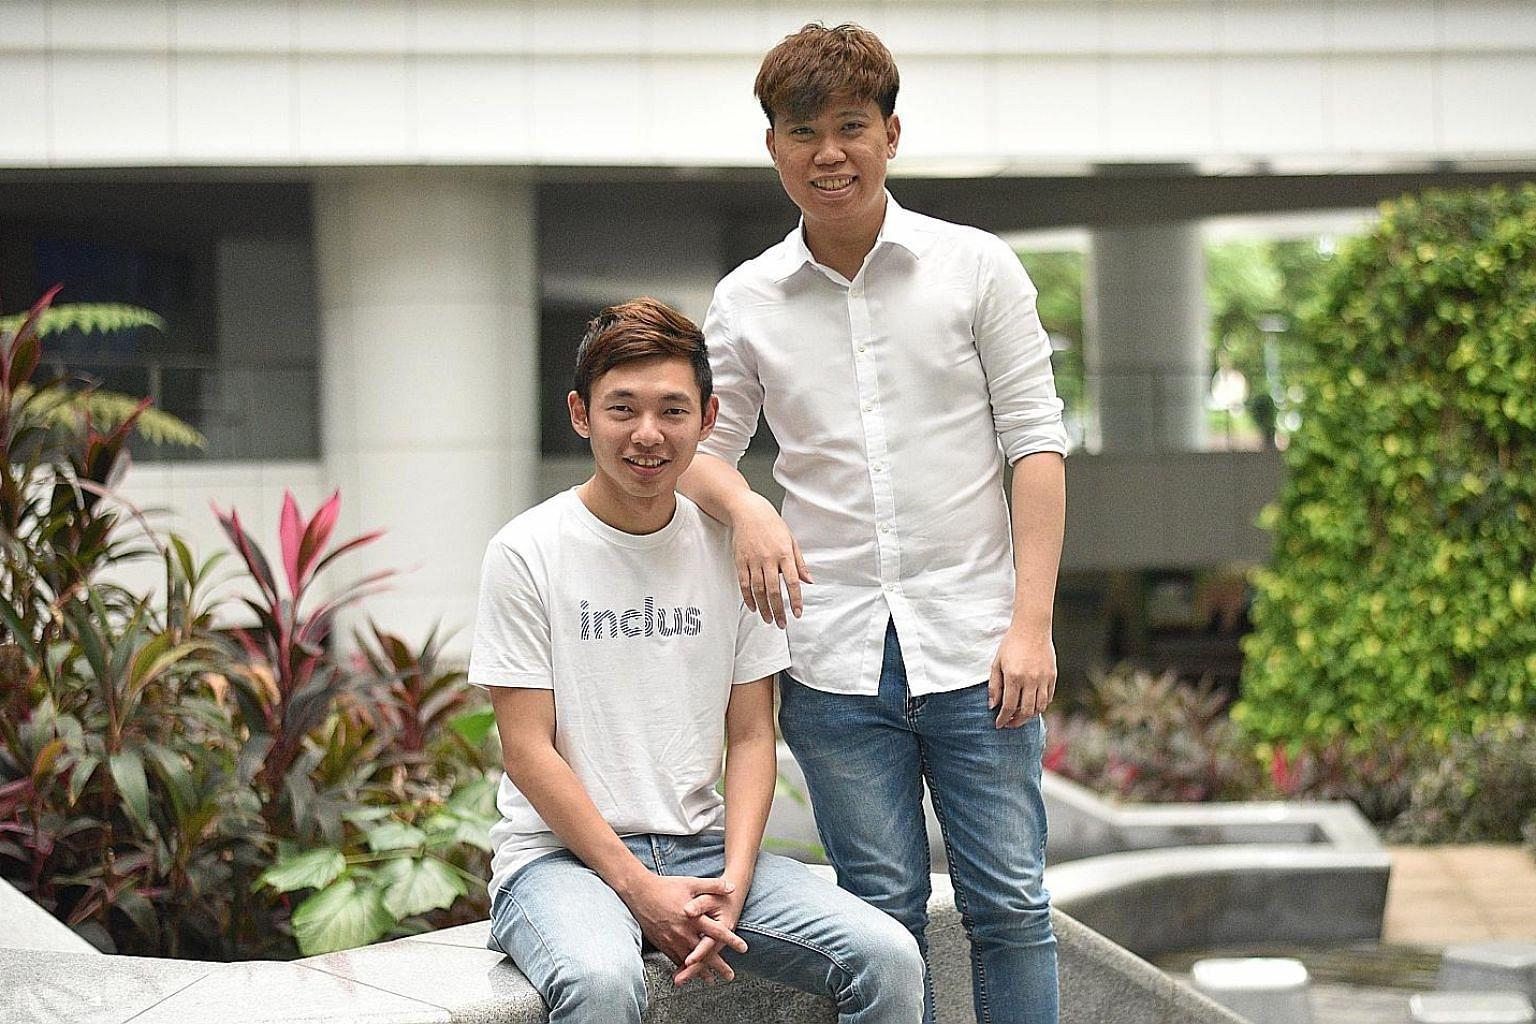 Institute of Technical Education graduates Anders Tan (left), co-founder of Inclus, and Aow Jia Rong, chief executive and co-founder of Ezsofe. Both entrepreneurs are part of a diploma programme that sees companies working with the institute on work-